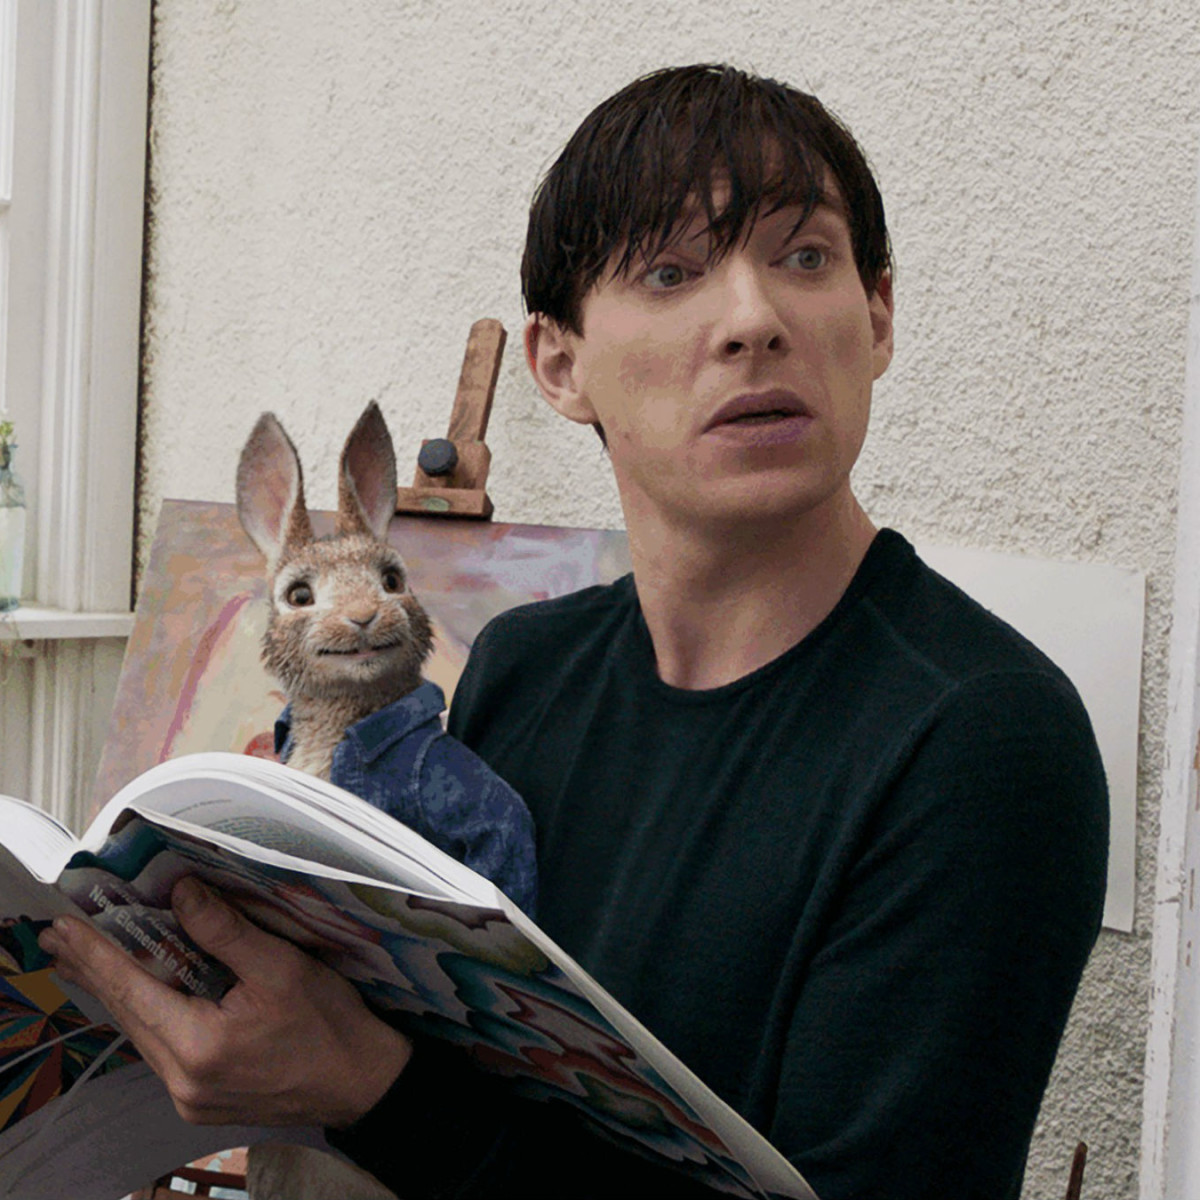 Peter Rabbit (James Corden) and Domhnall Gleeson in Peter Rabbit